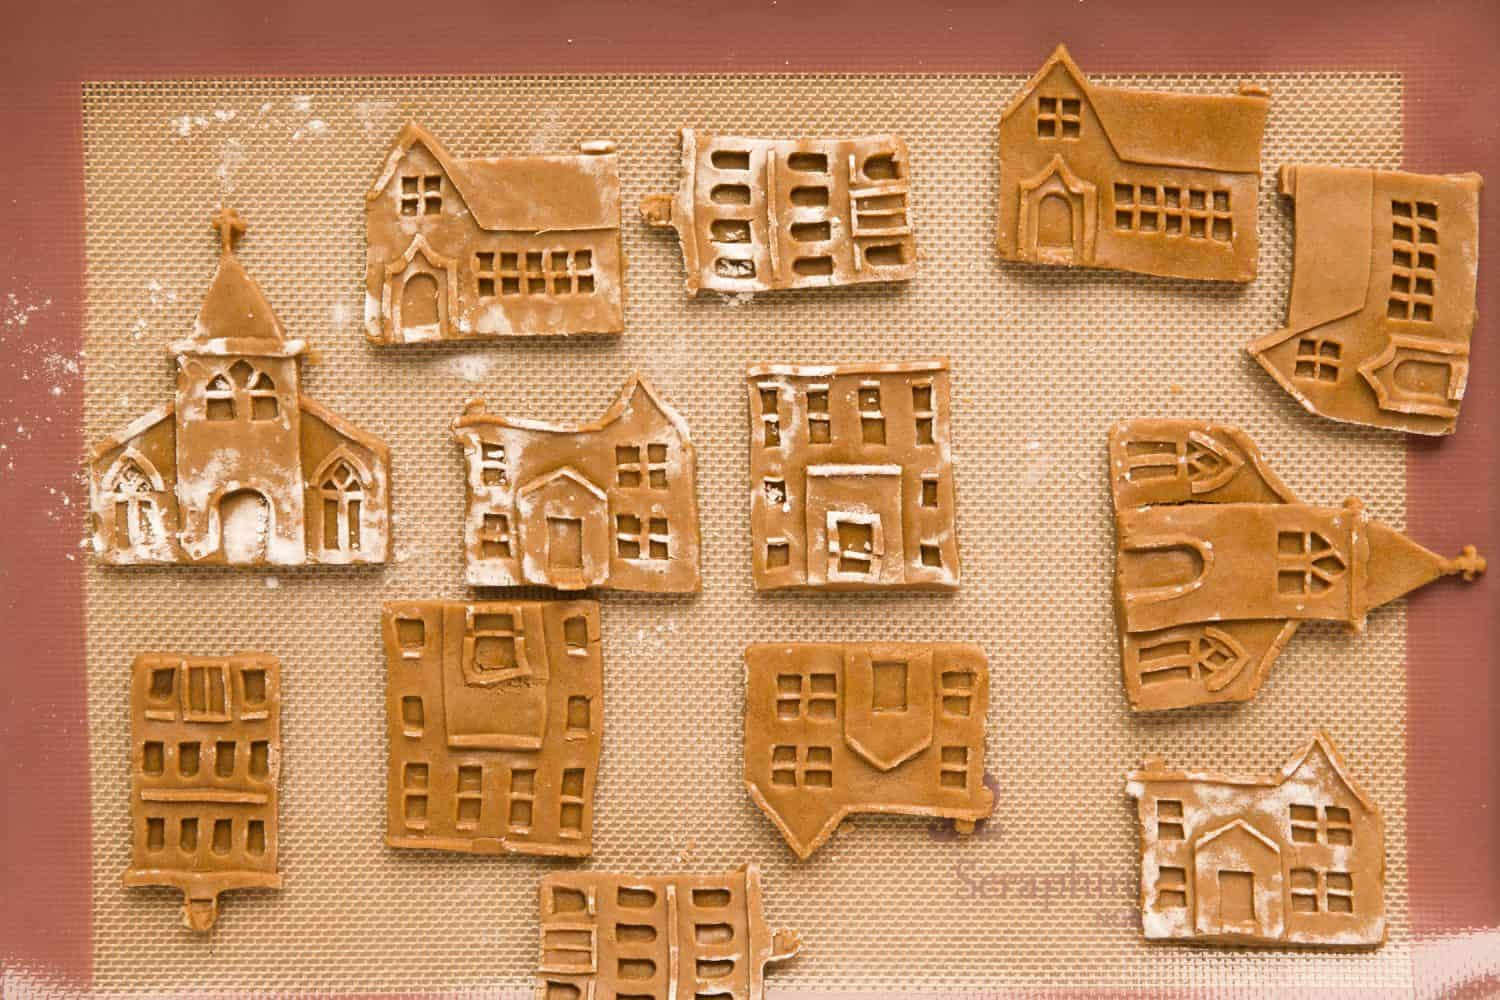 Unbaked gingerbread biscuits in the shape of small houses and churches. They are on top of a baking tray.